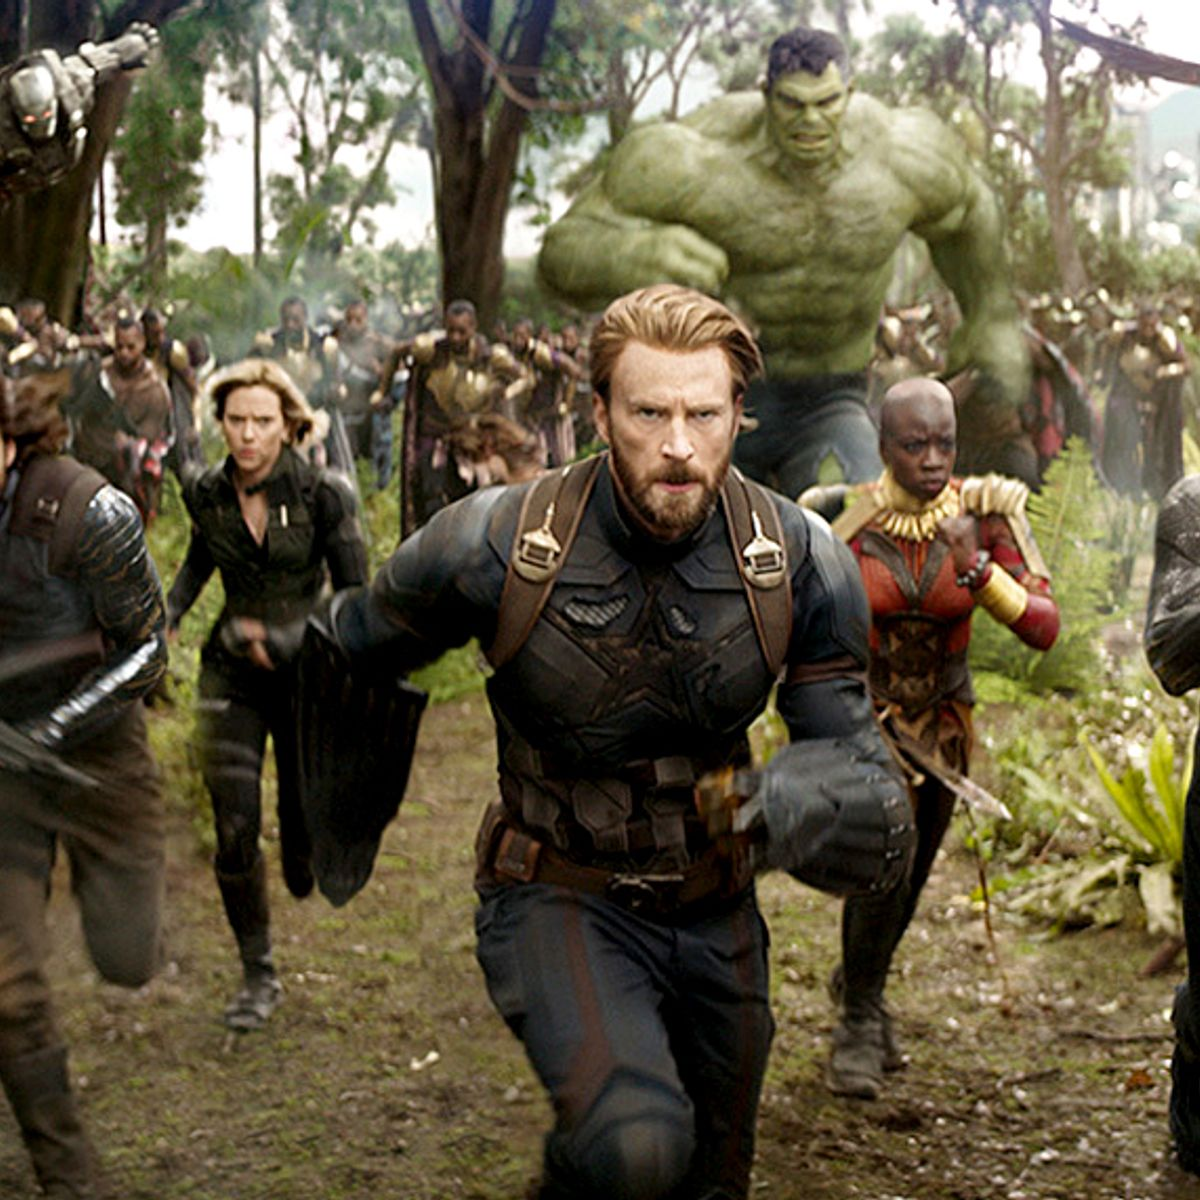 The Marvel Cinematic Universe dominated the decade – here are all 23 films, ranked